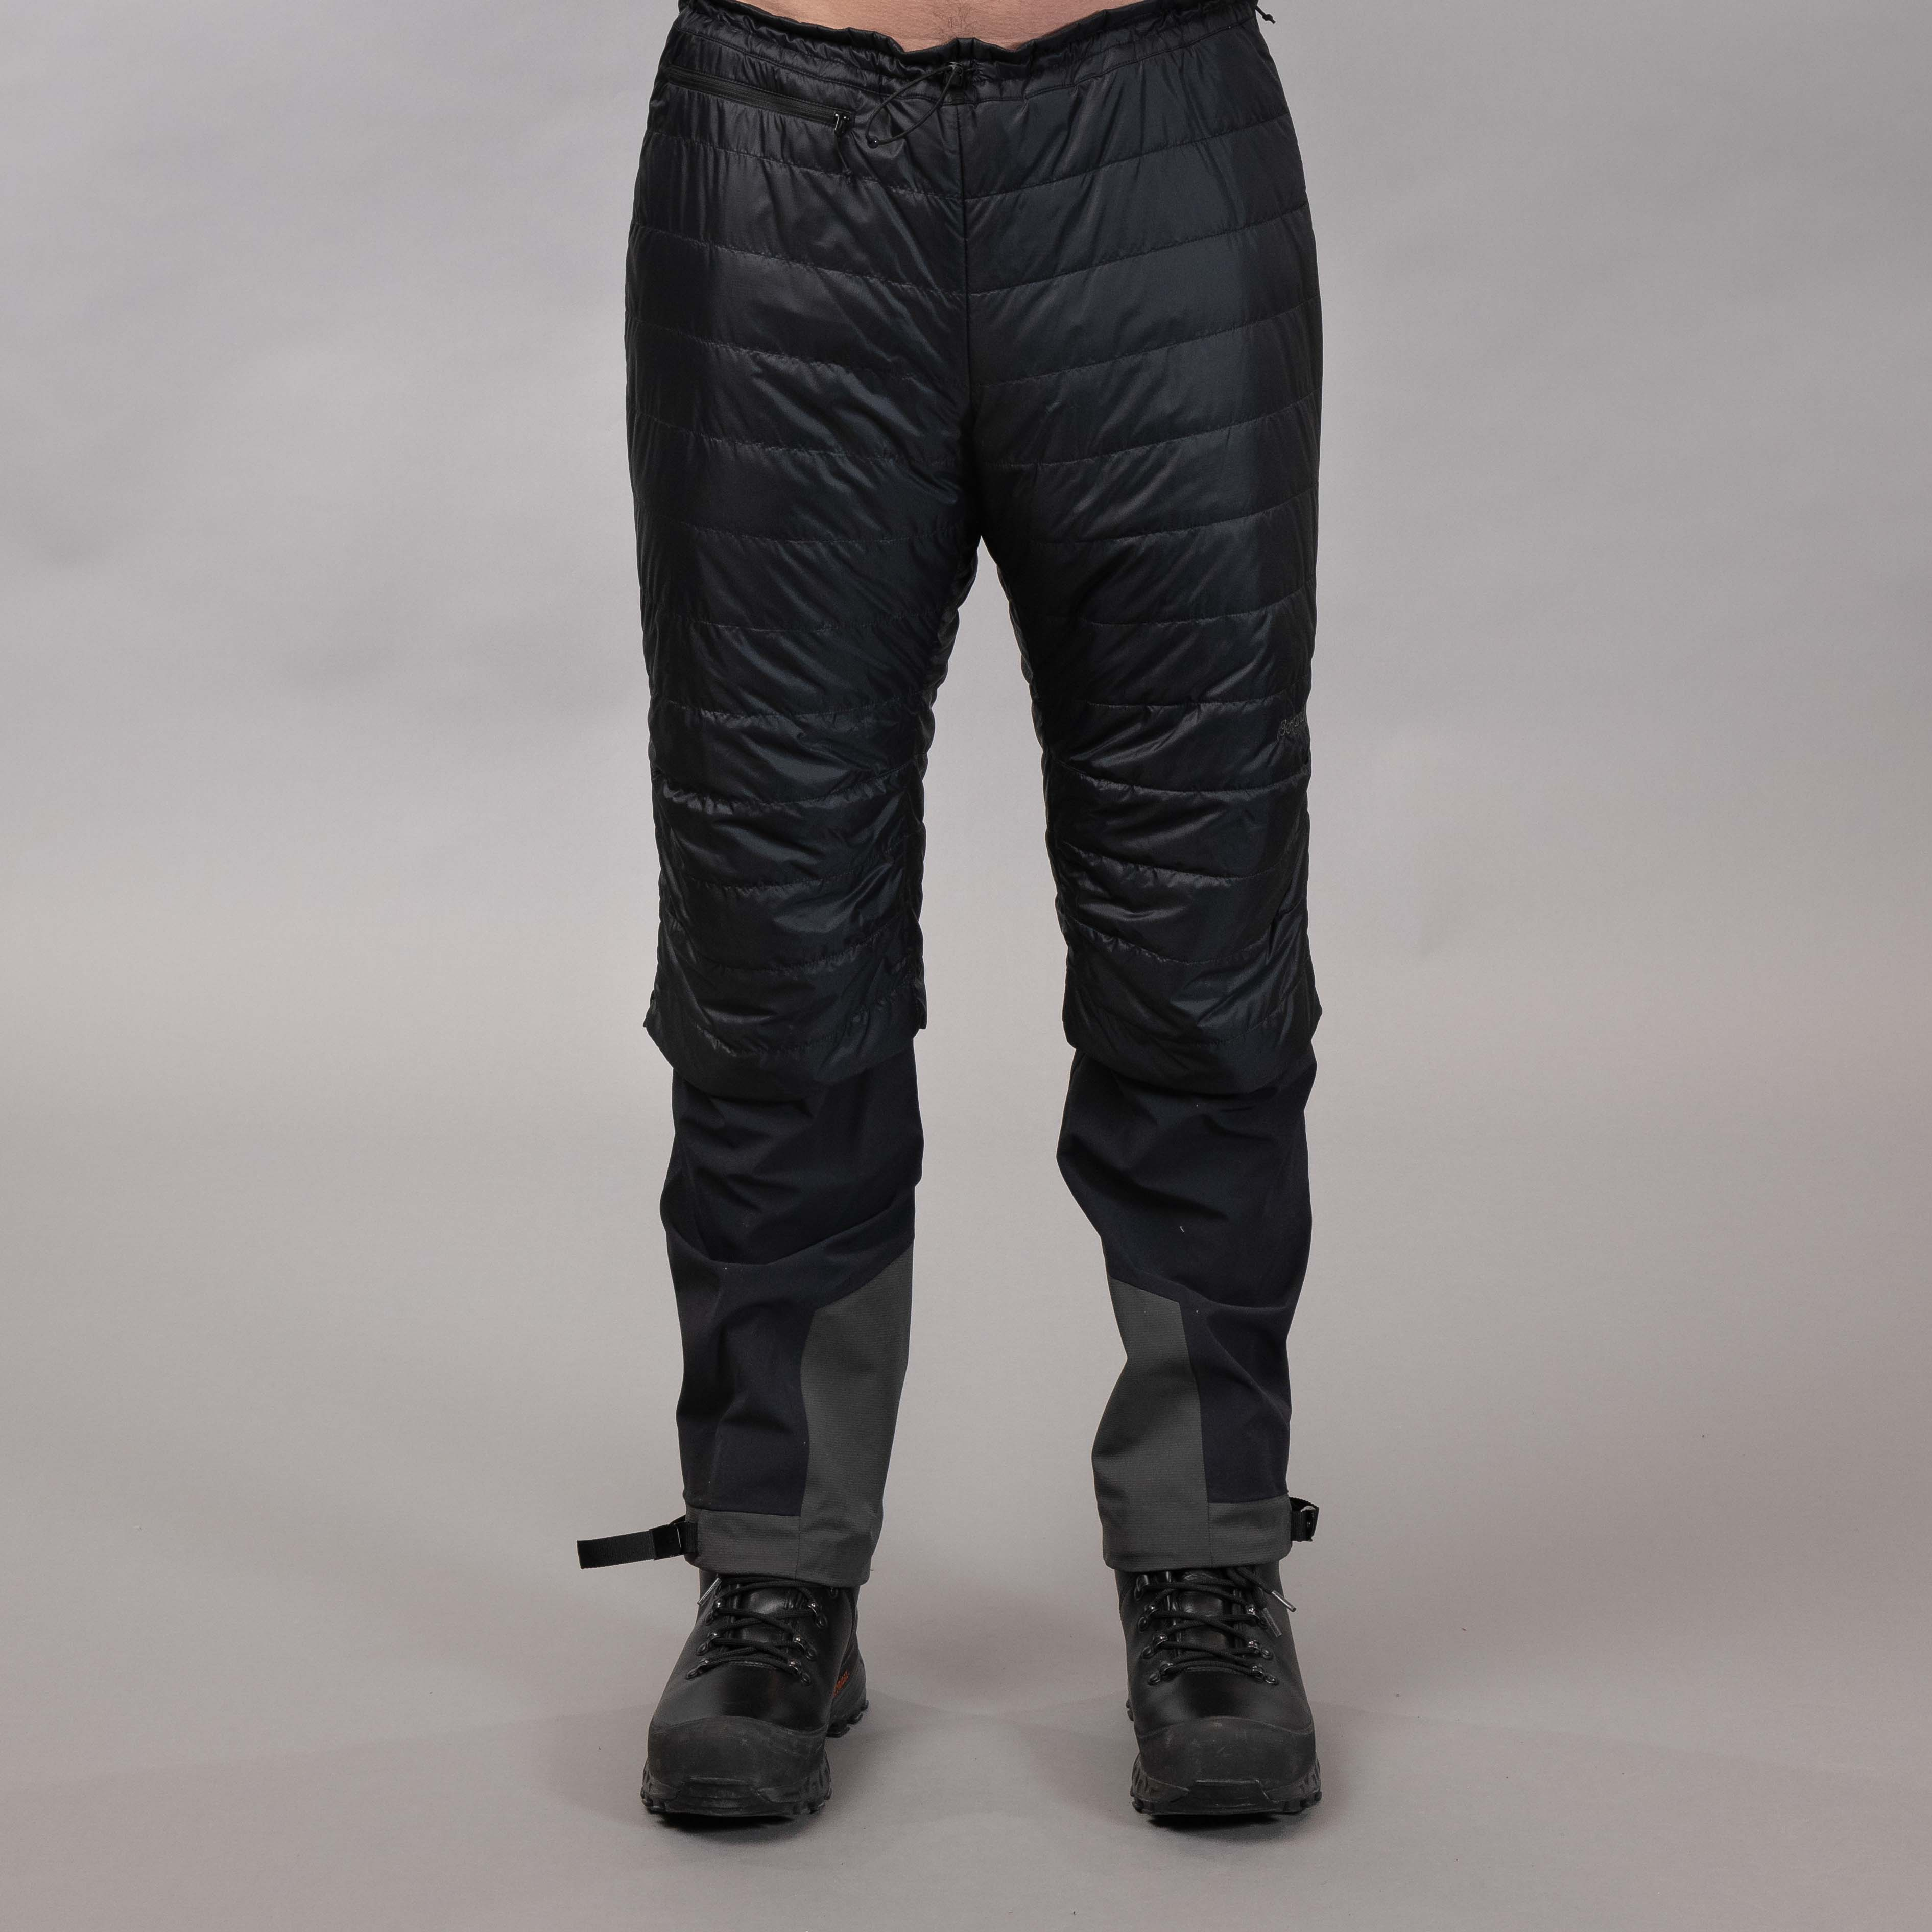 Røros Insulated 3/4 Pants